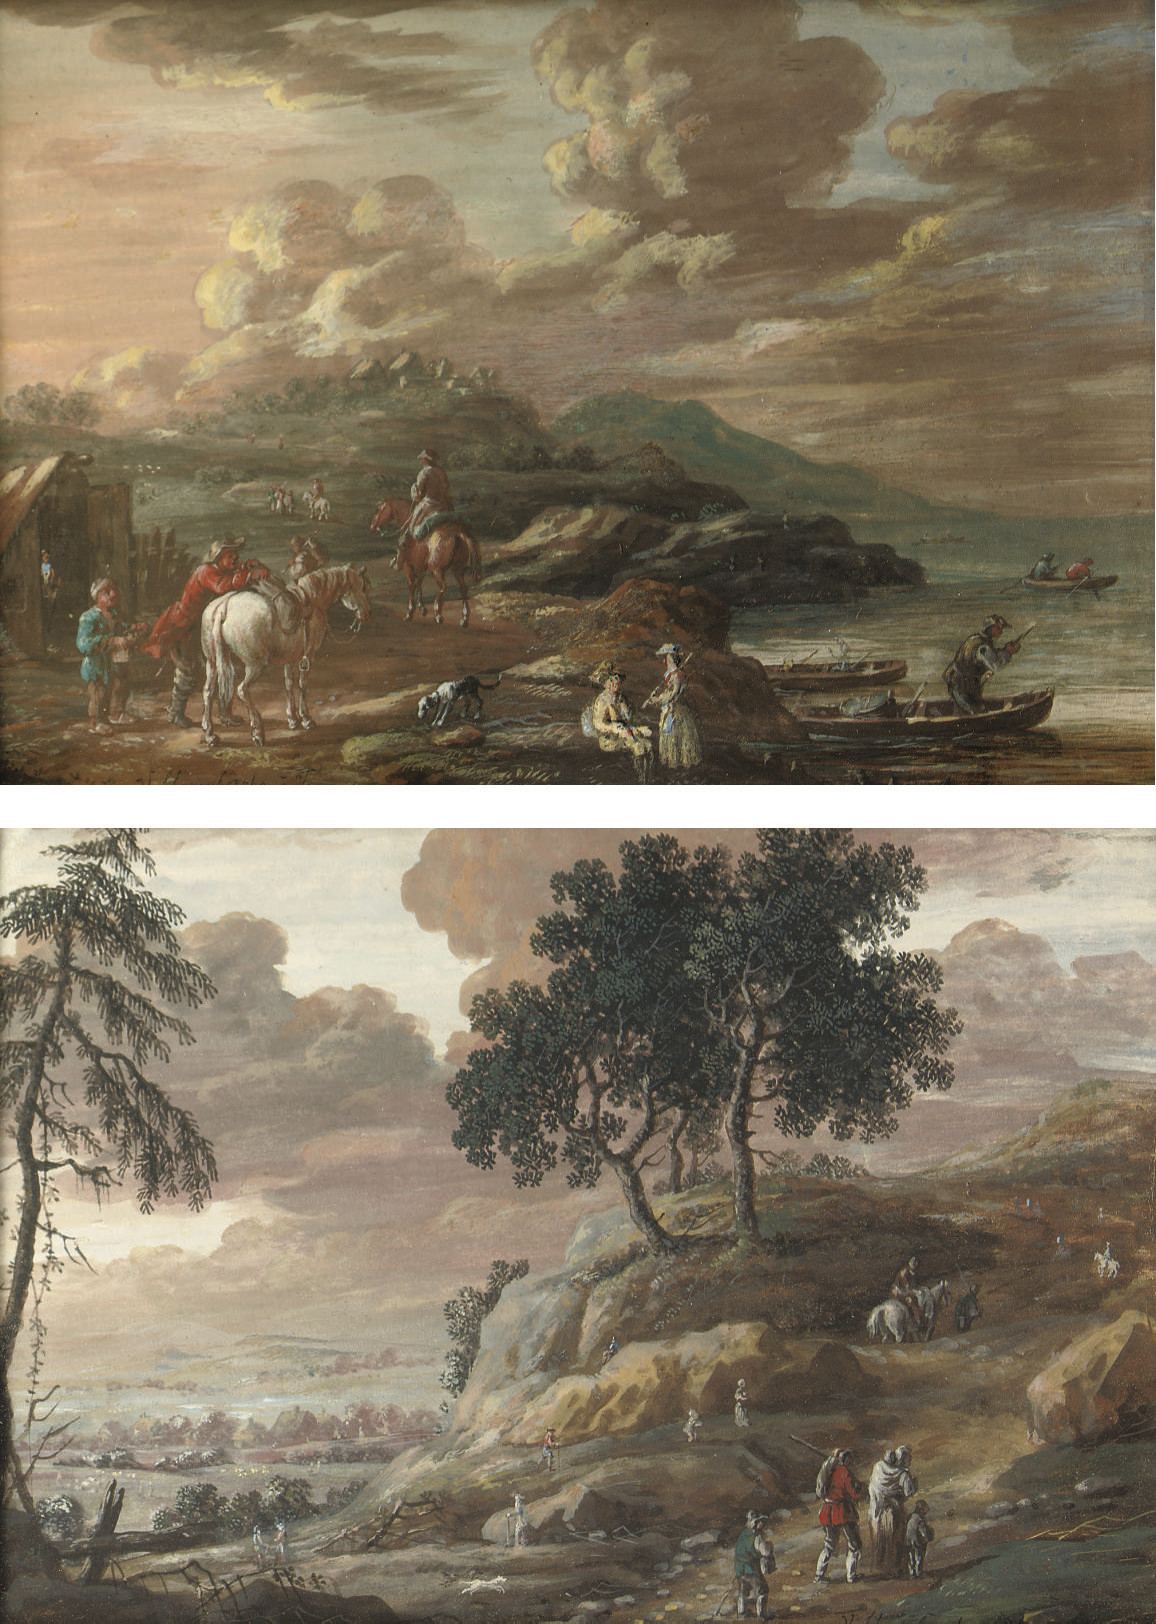 A coastal landscape with horsemen and other figures outside a stable, figures in boats nearby; and A hilly river landscape with travellers on a track, a village beyond